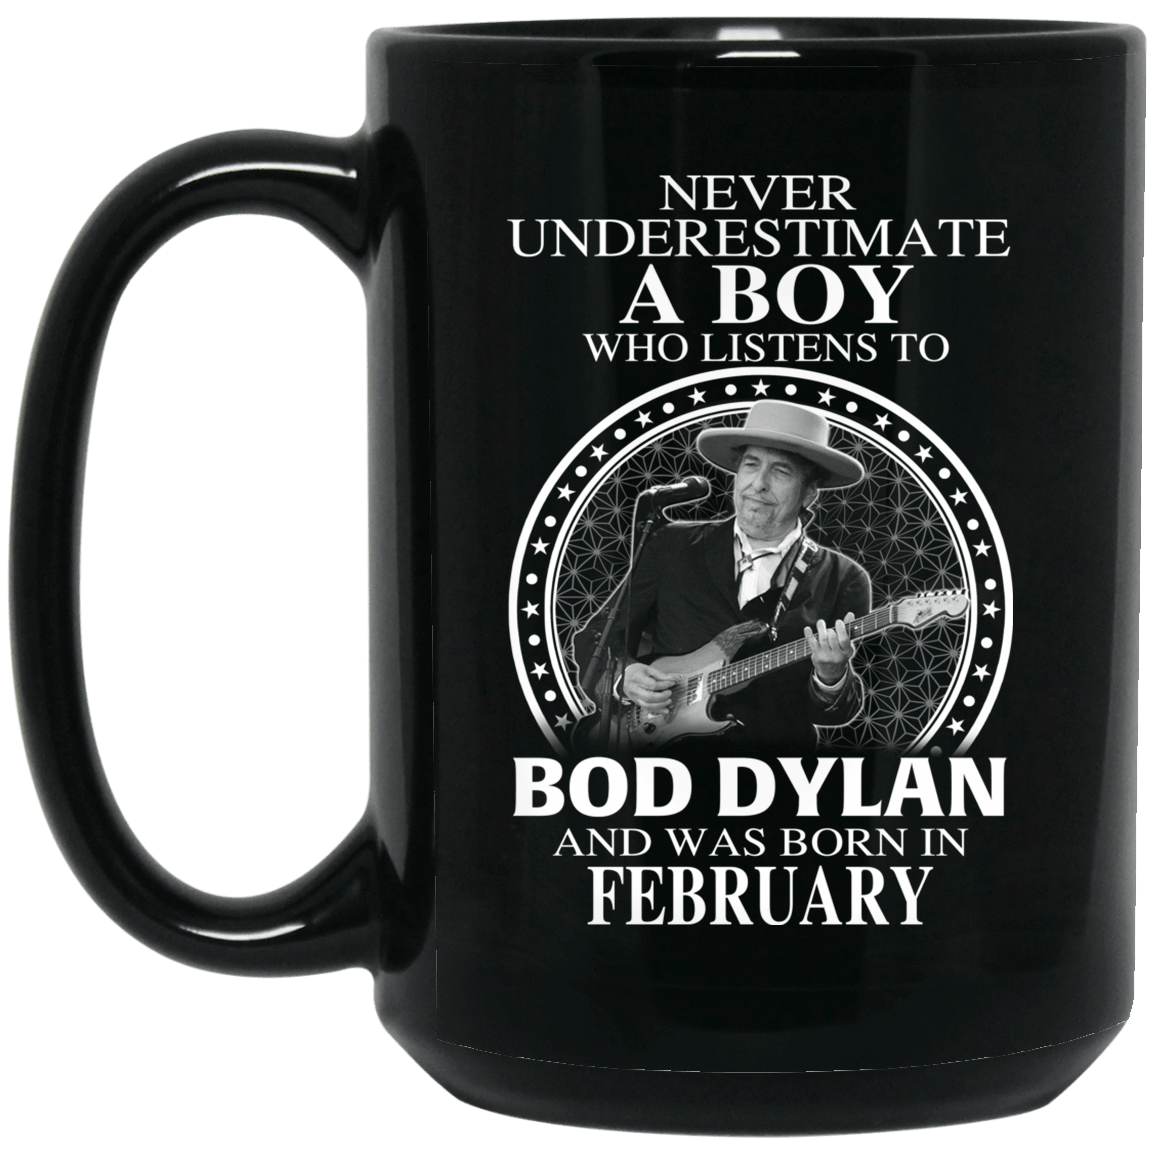 A Boy Who Listens To Bob Dylan And Was Born In February Mug 1066-10182-76154927-49311 - Tee Ript